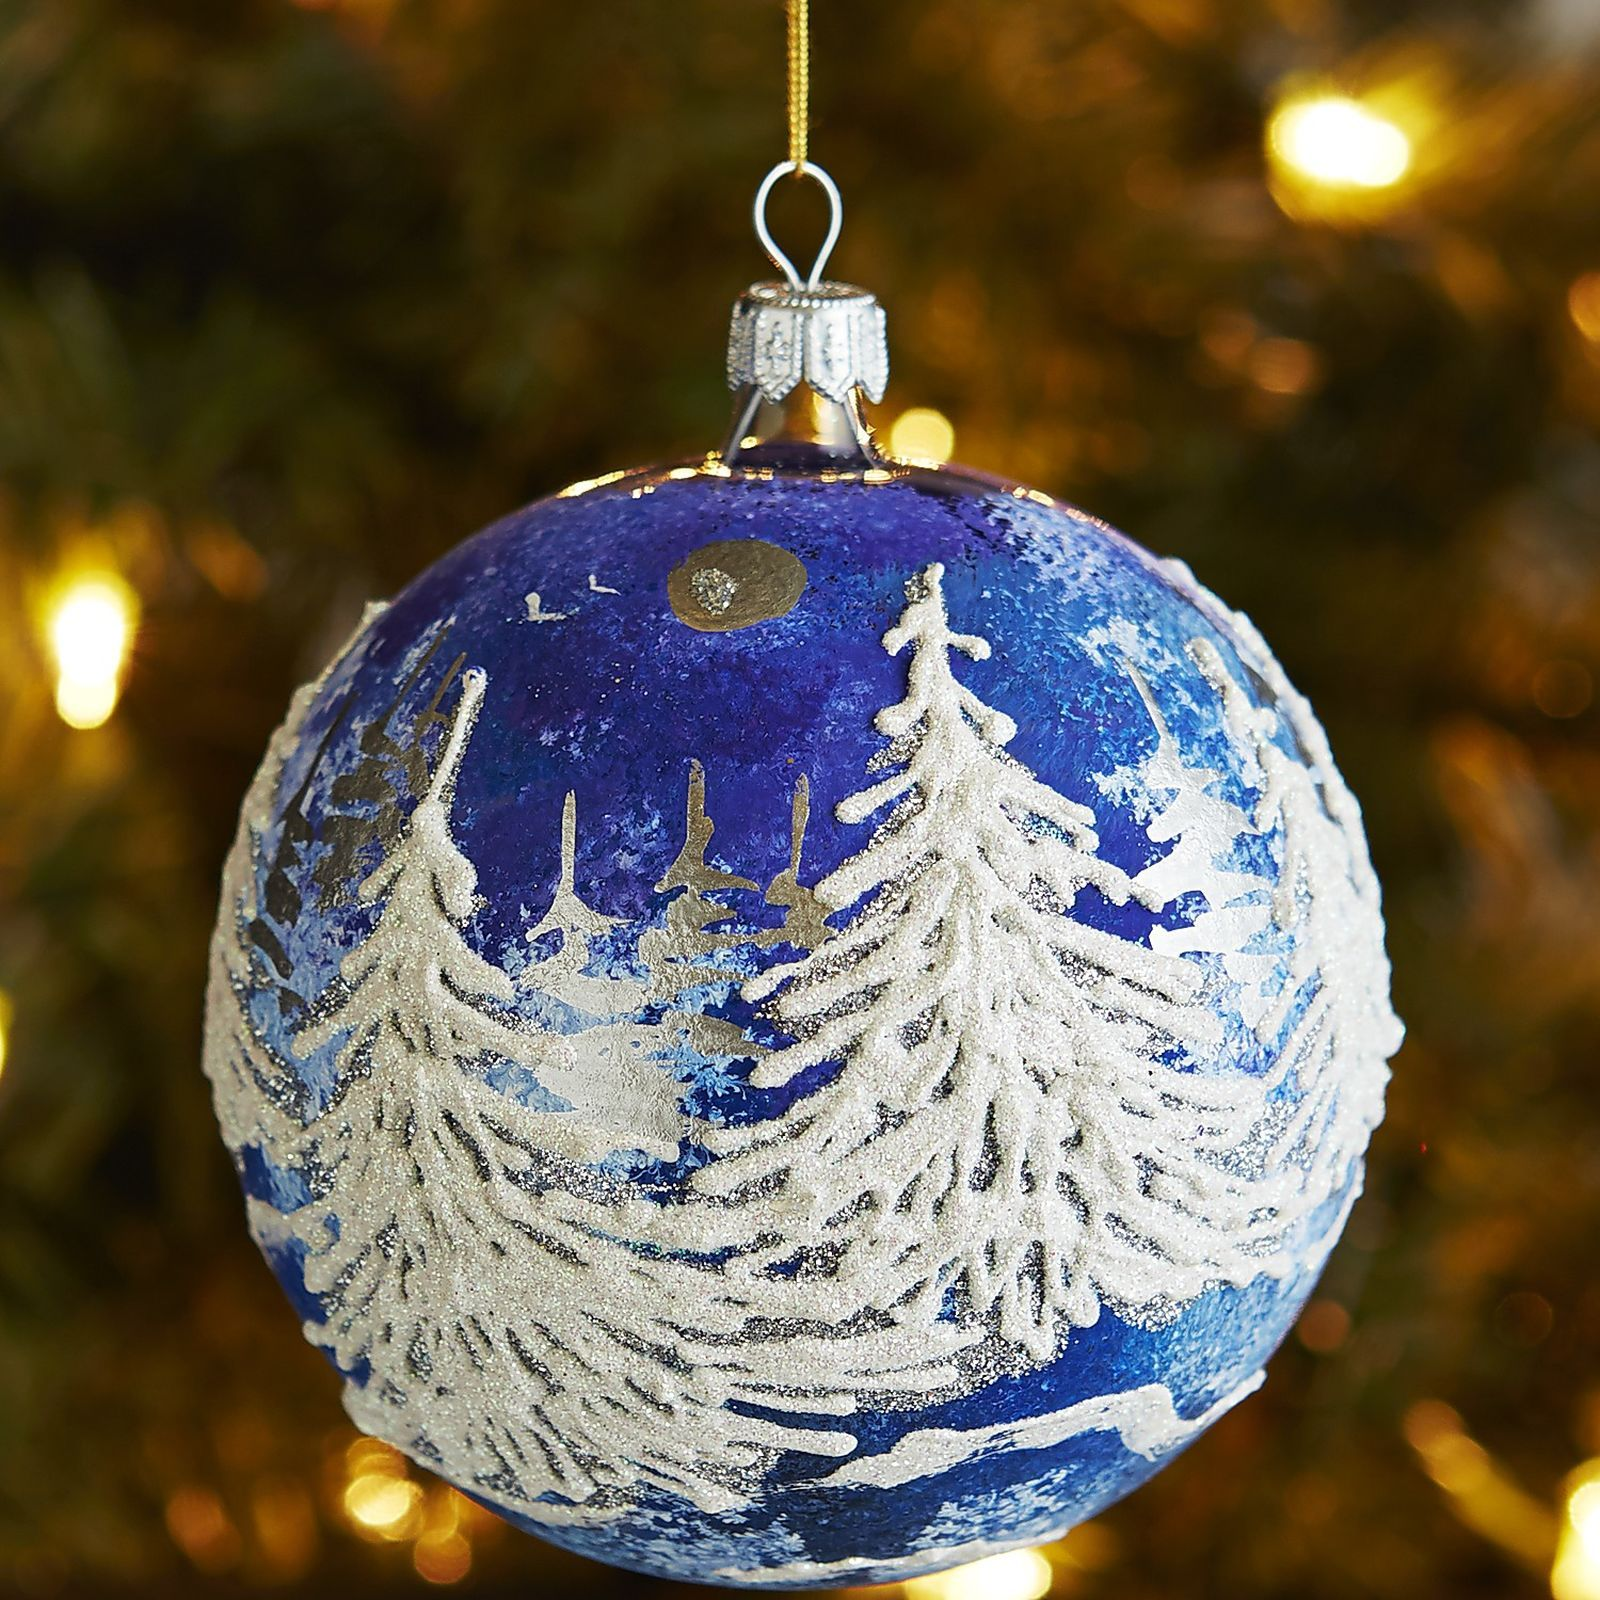 Pier 1 Christmas Ornaments.European Glass Relief Trees Ornament Blue Pier 1 Imports